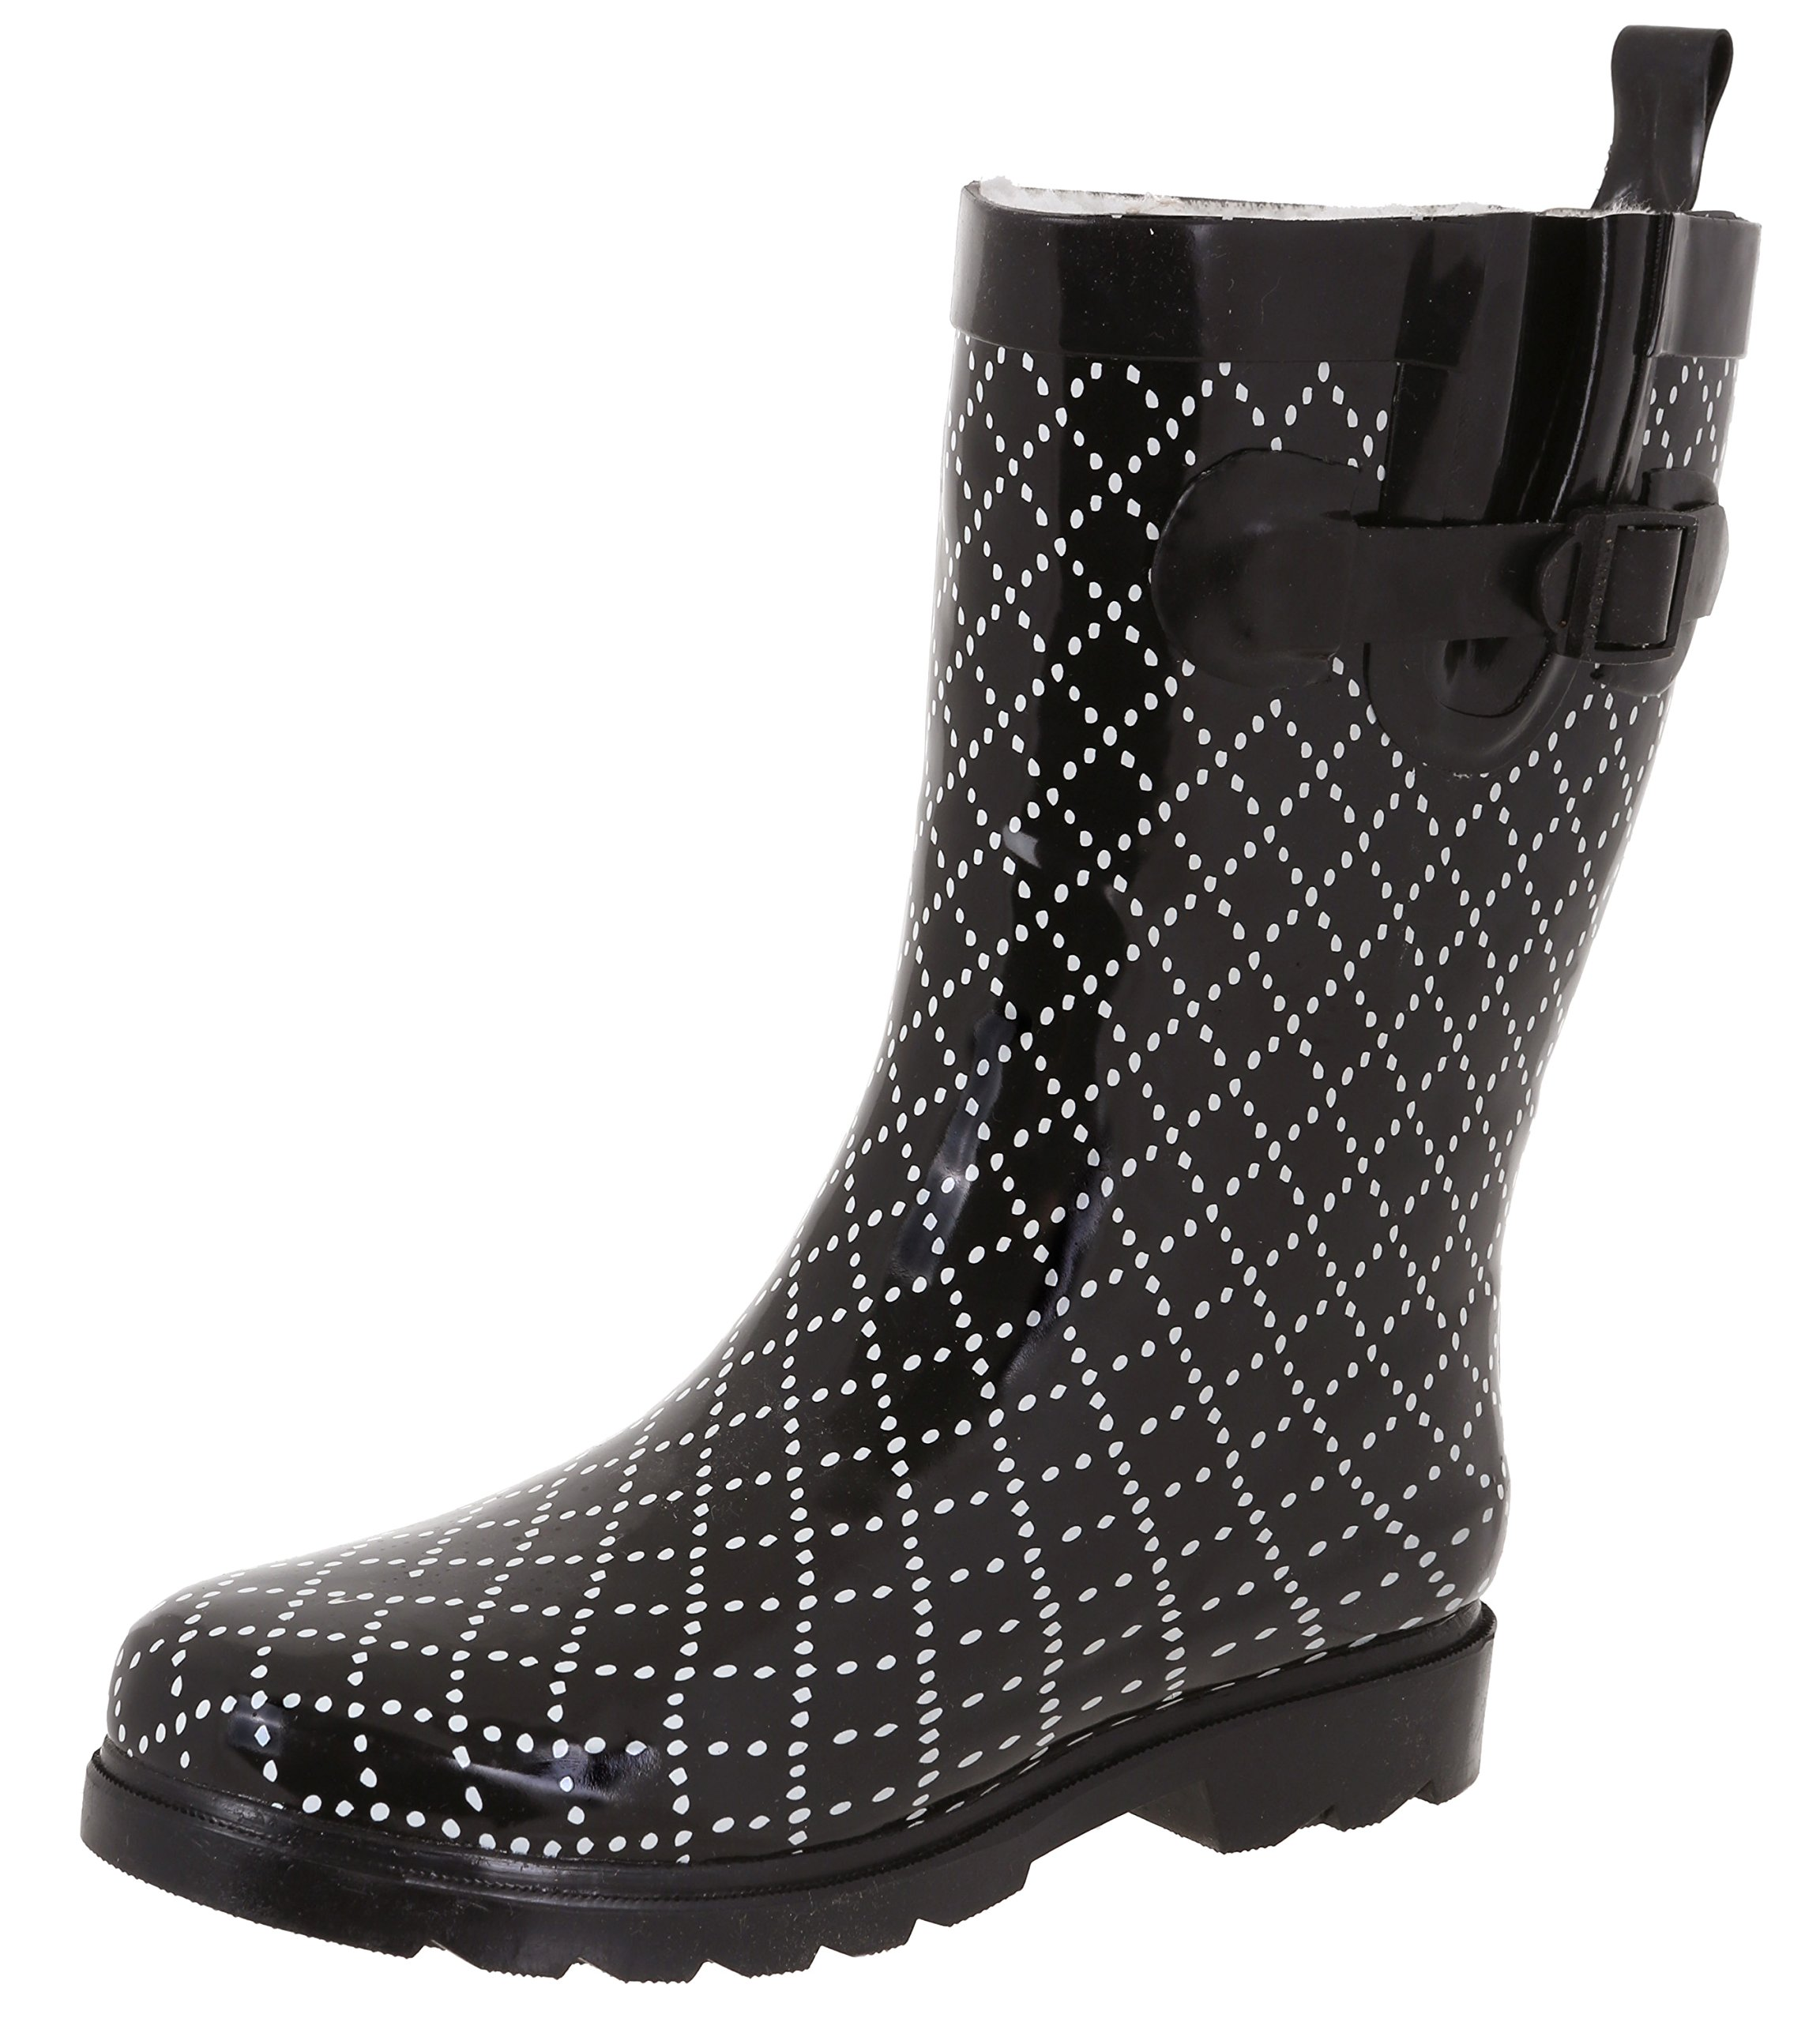 Capelli New York Ladies Dotted Diamonds Printed Mid-Calf Rain Boot Black Combo 9